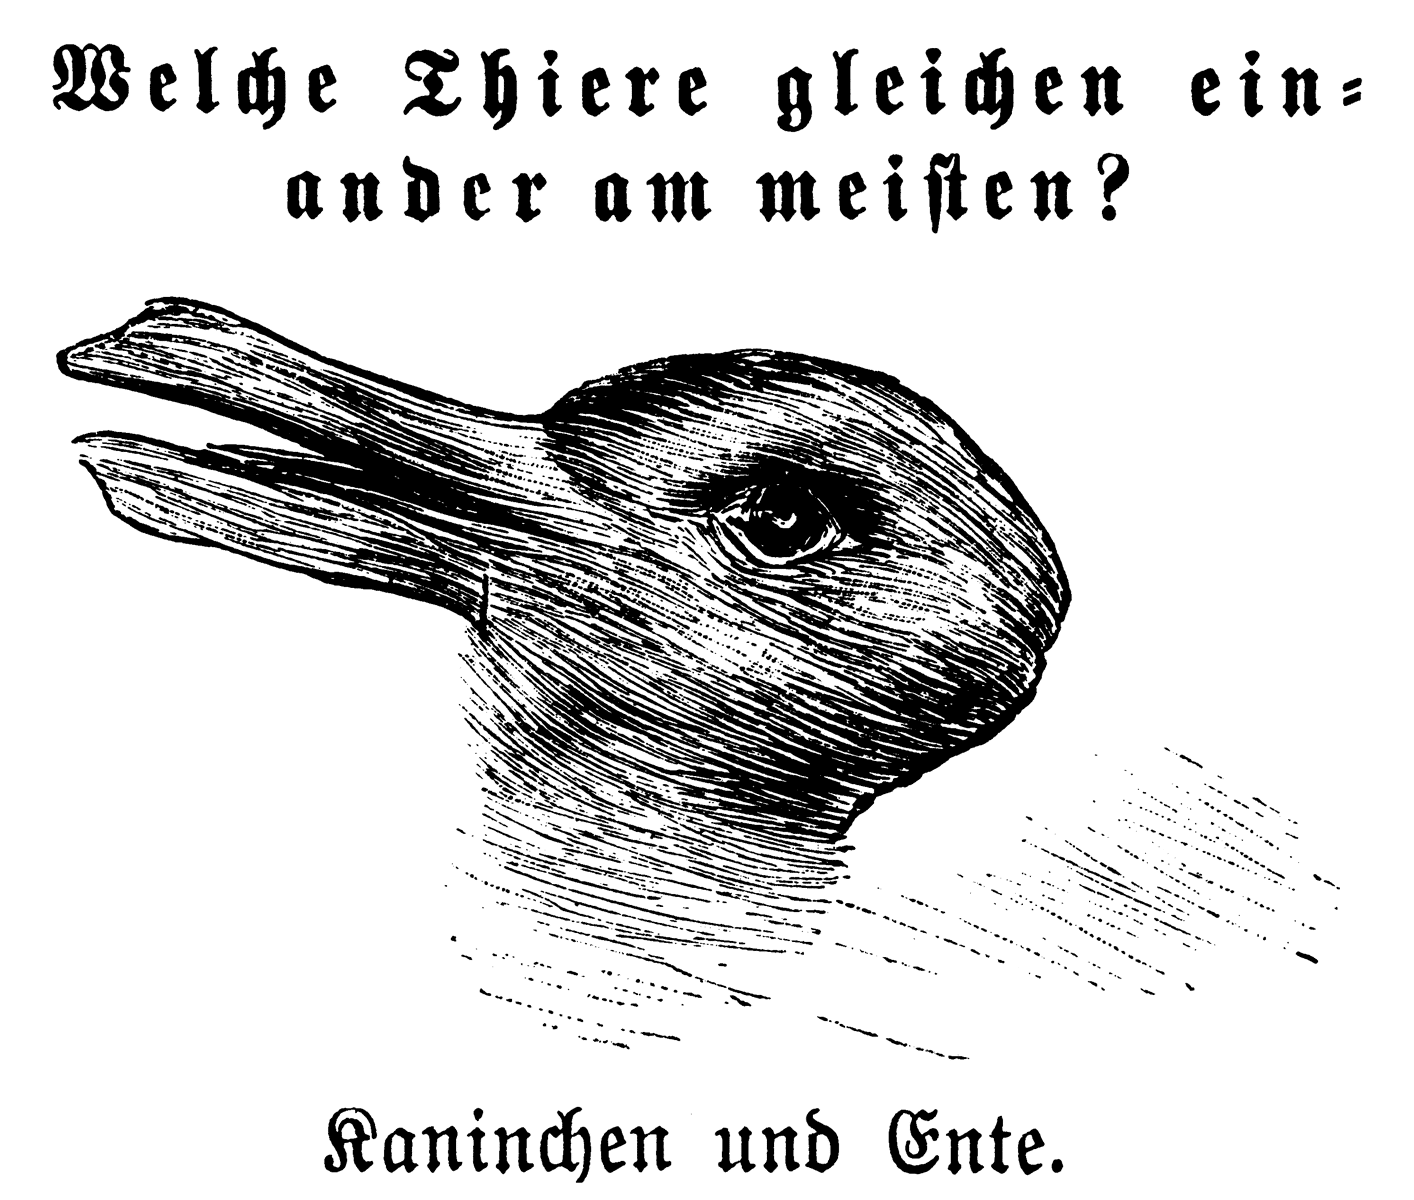 https://upload.wikimedia.org/wikipedia/commons/a/ab/Kaninchen_und_Ente.png?uselang=ja